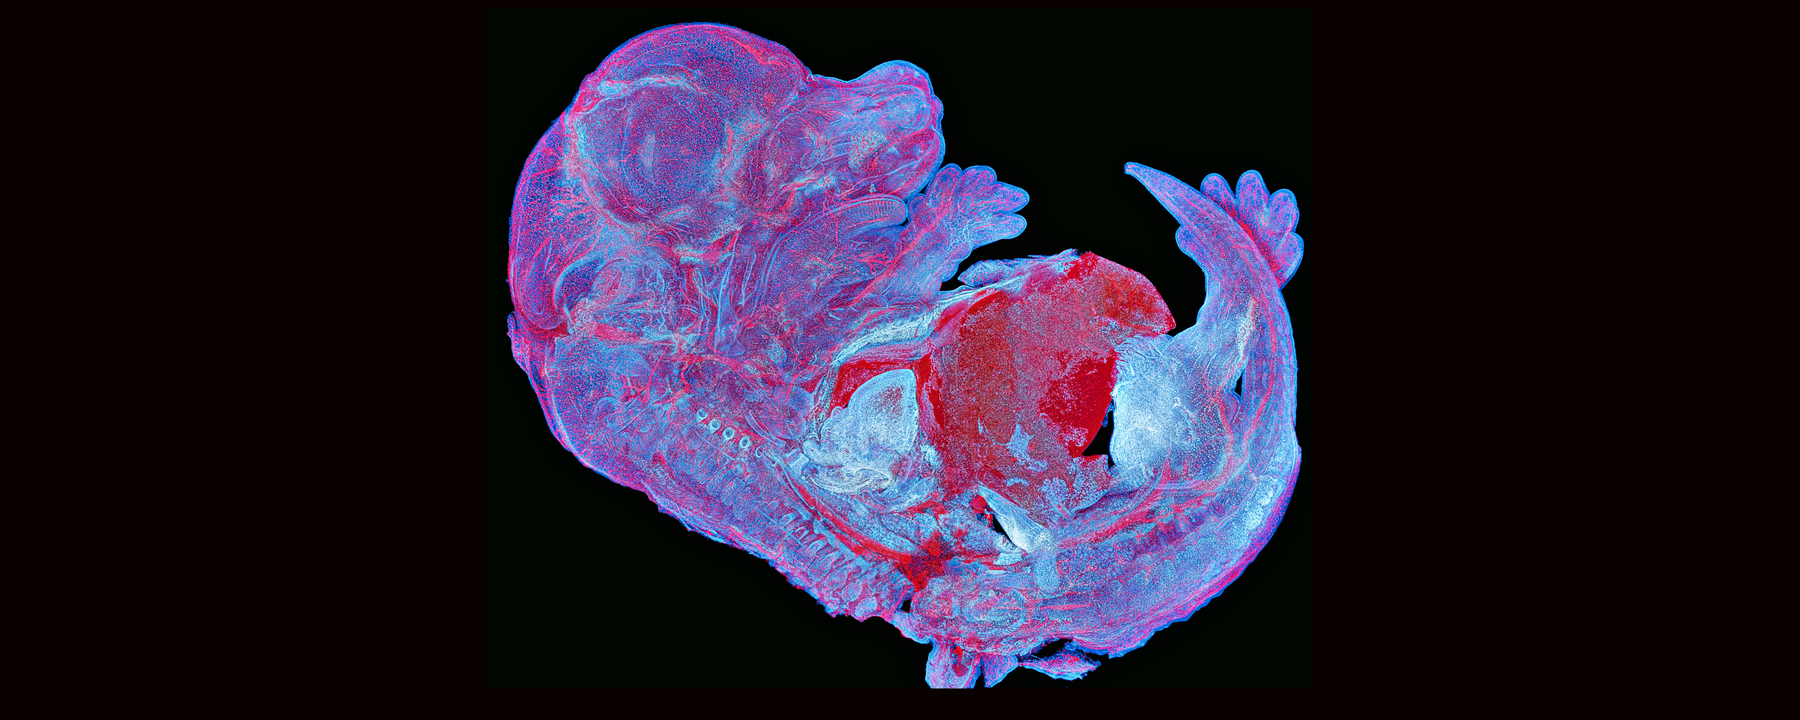 Image of the Day: A Mouse Brain Slice Becomes Art